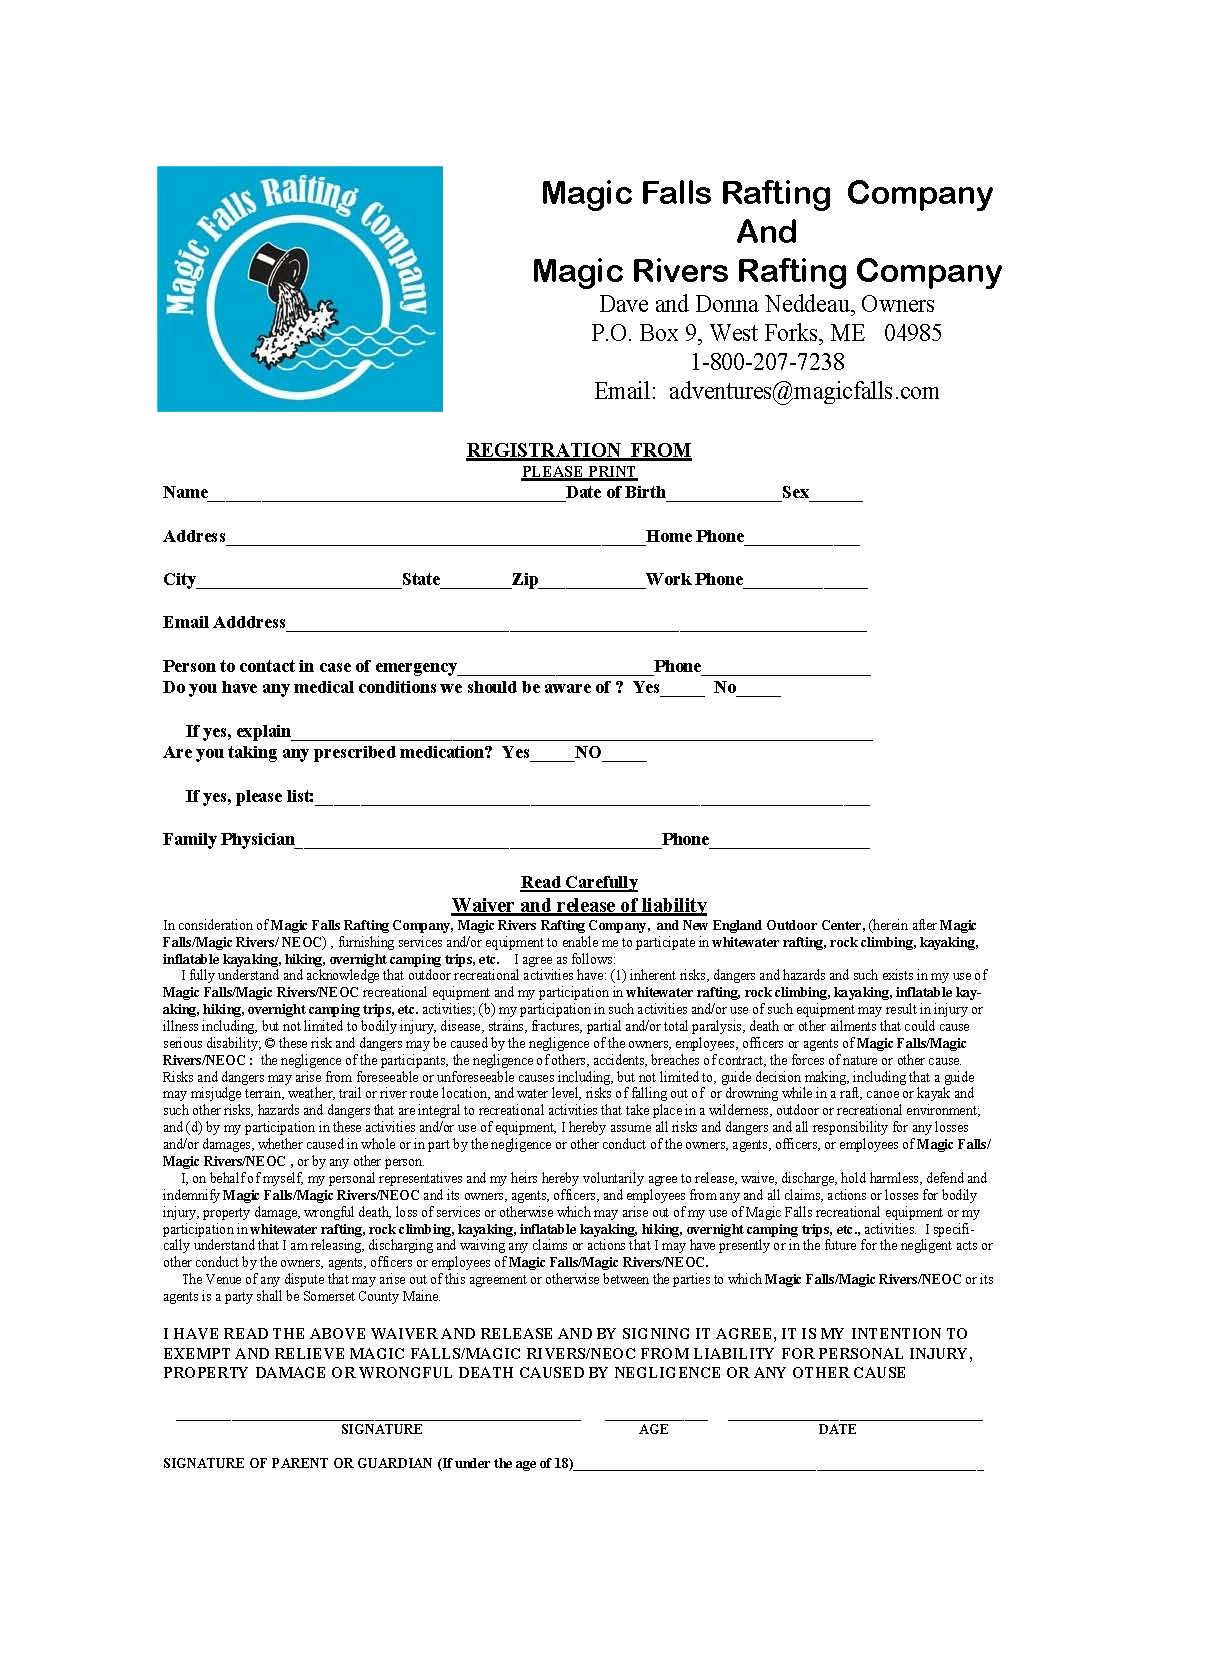 Beautiful Maine Whitewater Rafting Information For Group Leaders New ReleaseW Form2 2 Information  Release Of Personal Information And Personal Information Release Form